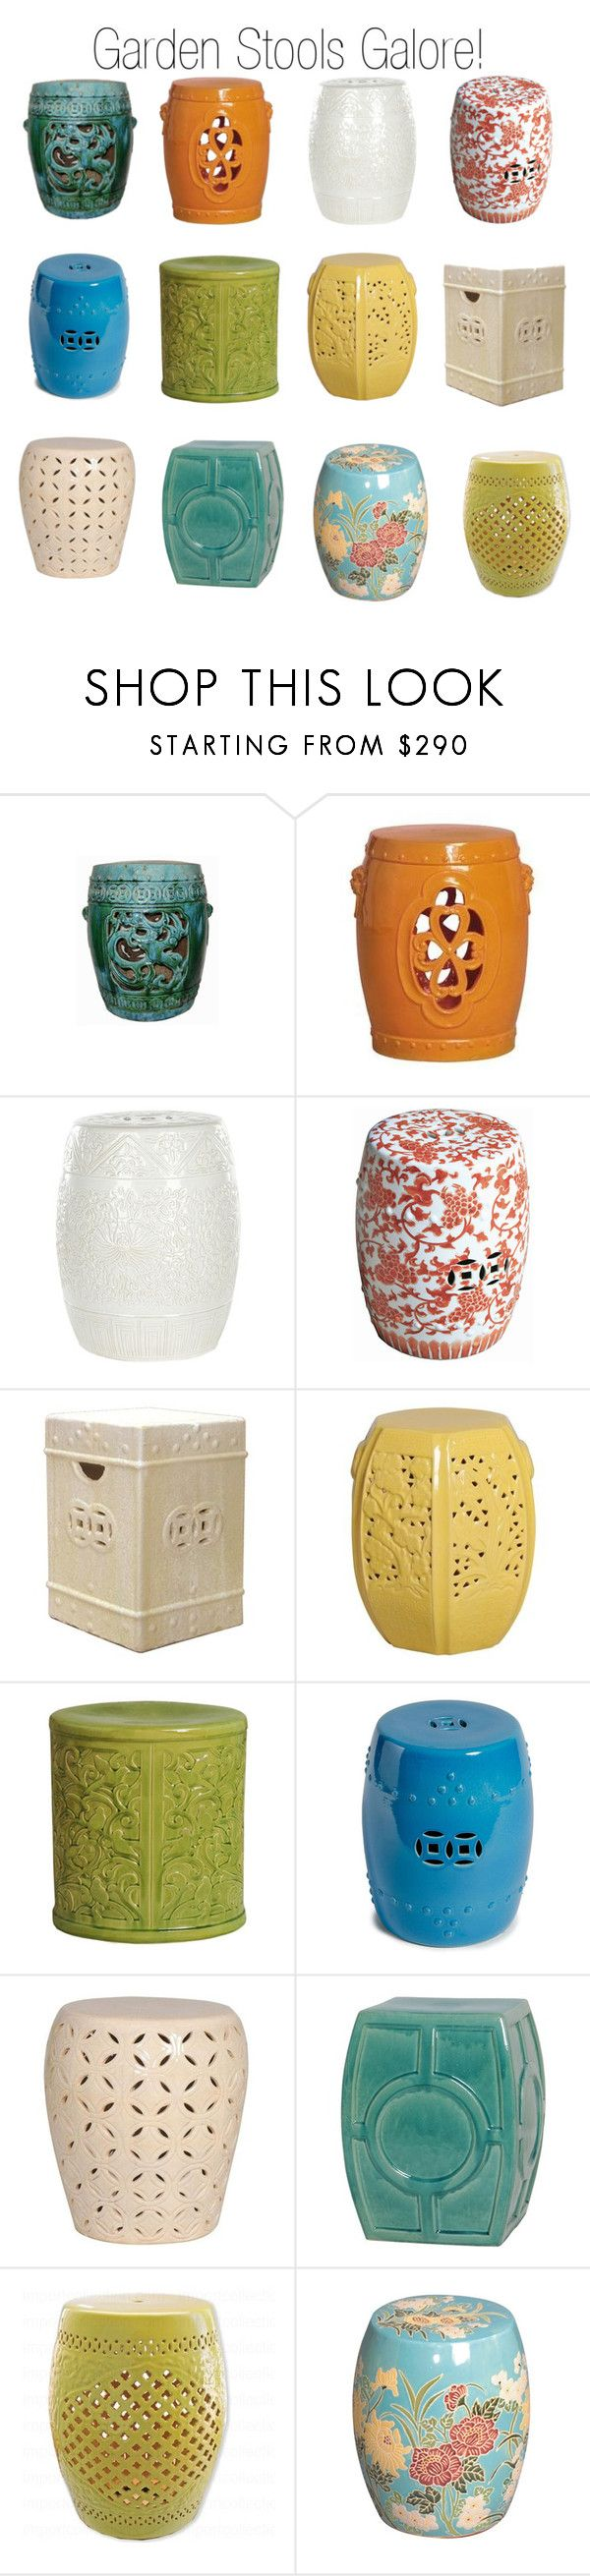 """Ceramic Garden Stools"" by insideavenue ❤ liked on Polyvore featuring interior, interiors, interior design, home, home decor, interior decorating, Legend of Asia, Emissary and Safavieh"